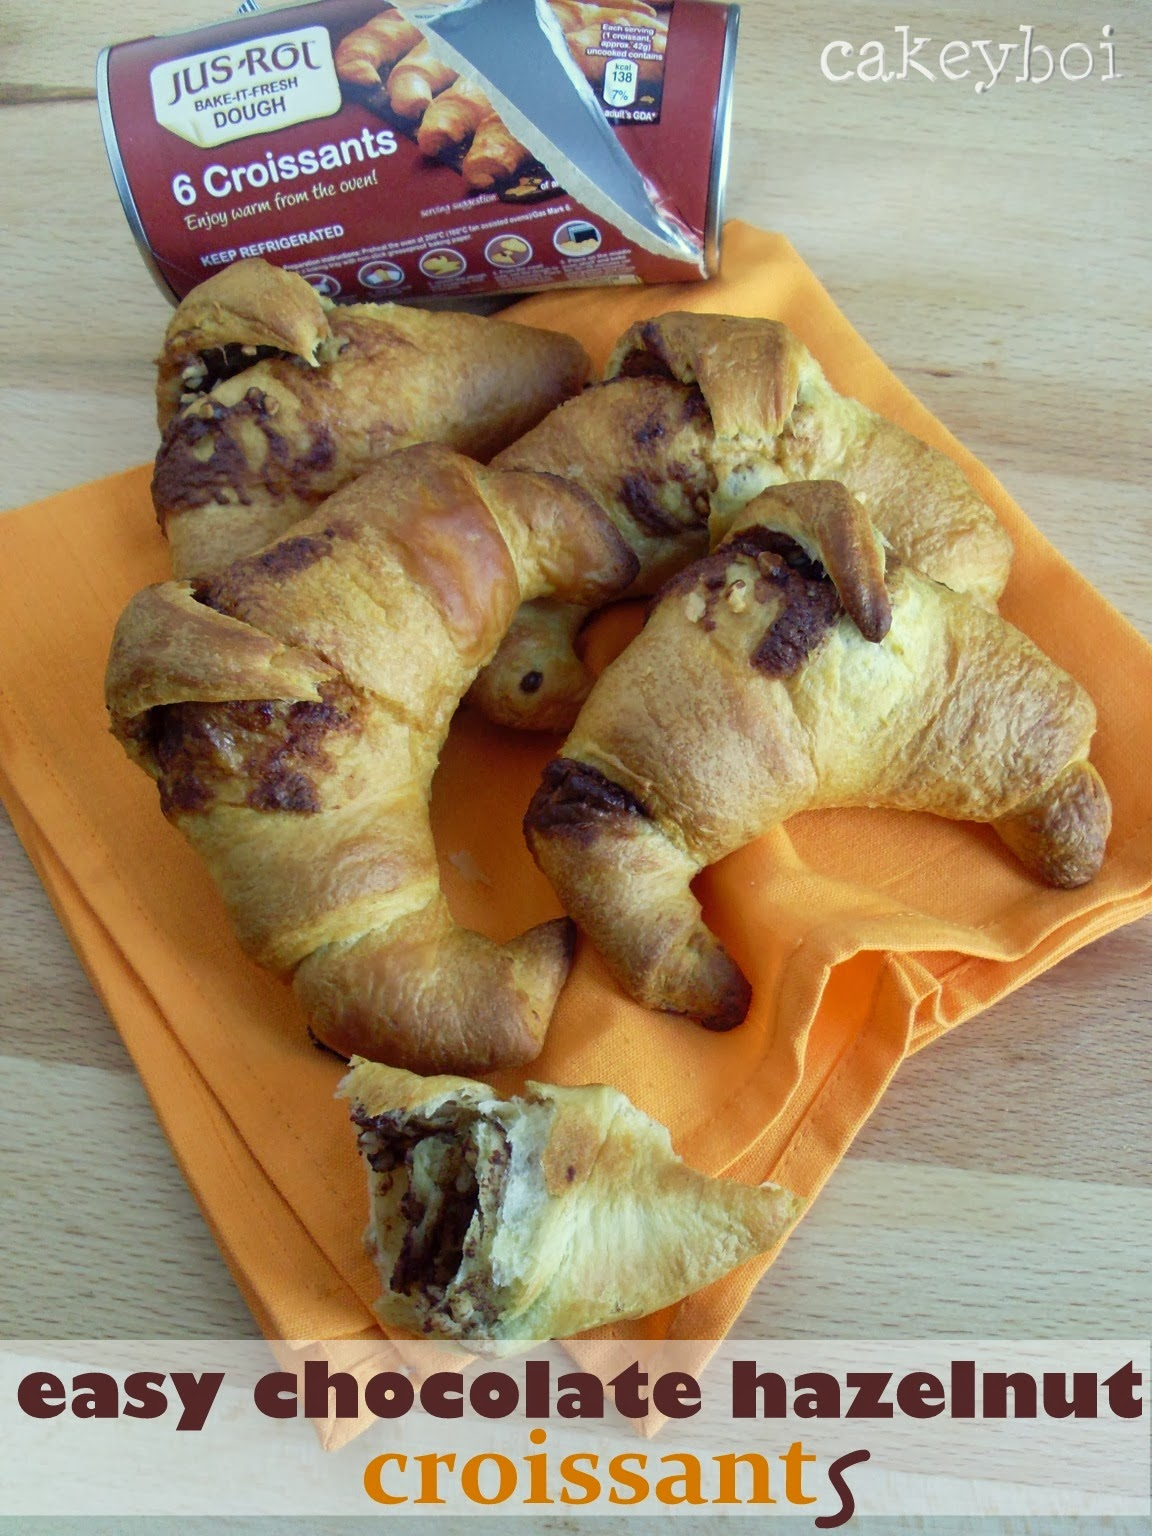 Easy Chocolate Hazelnut Croissants